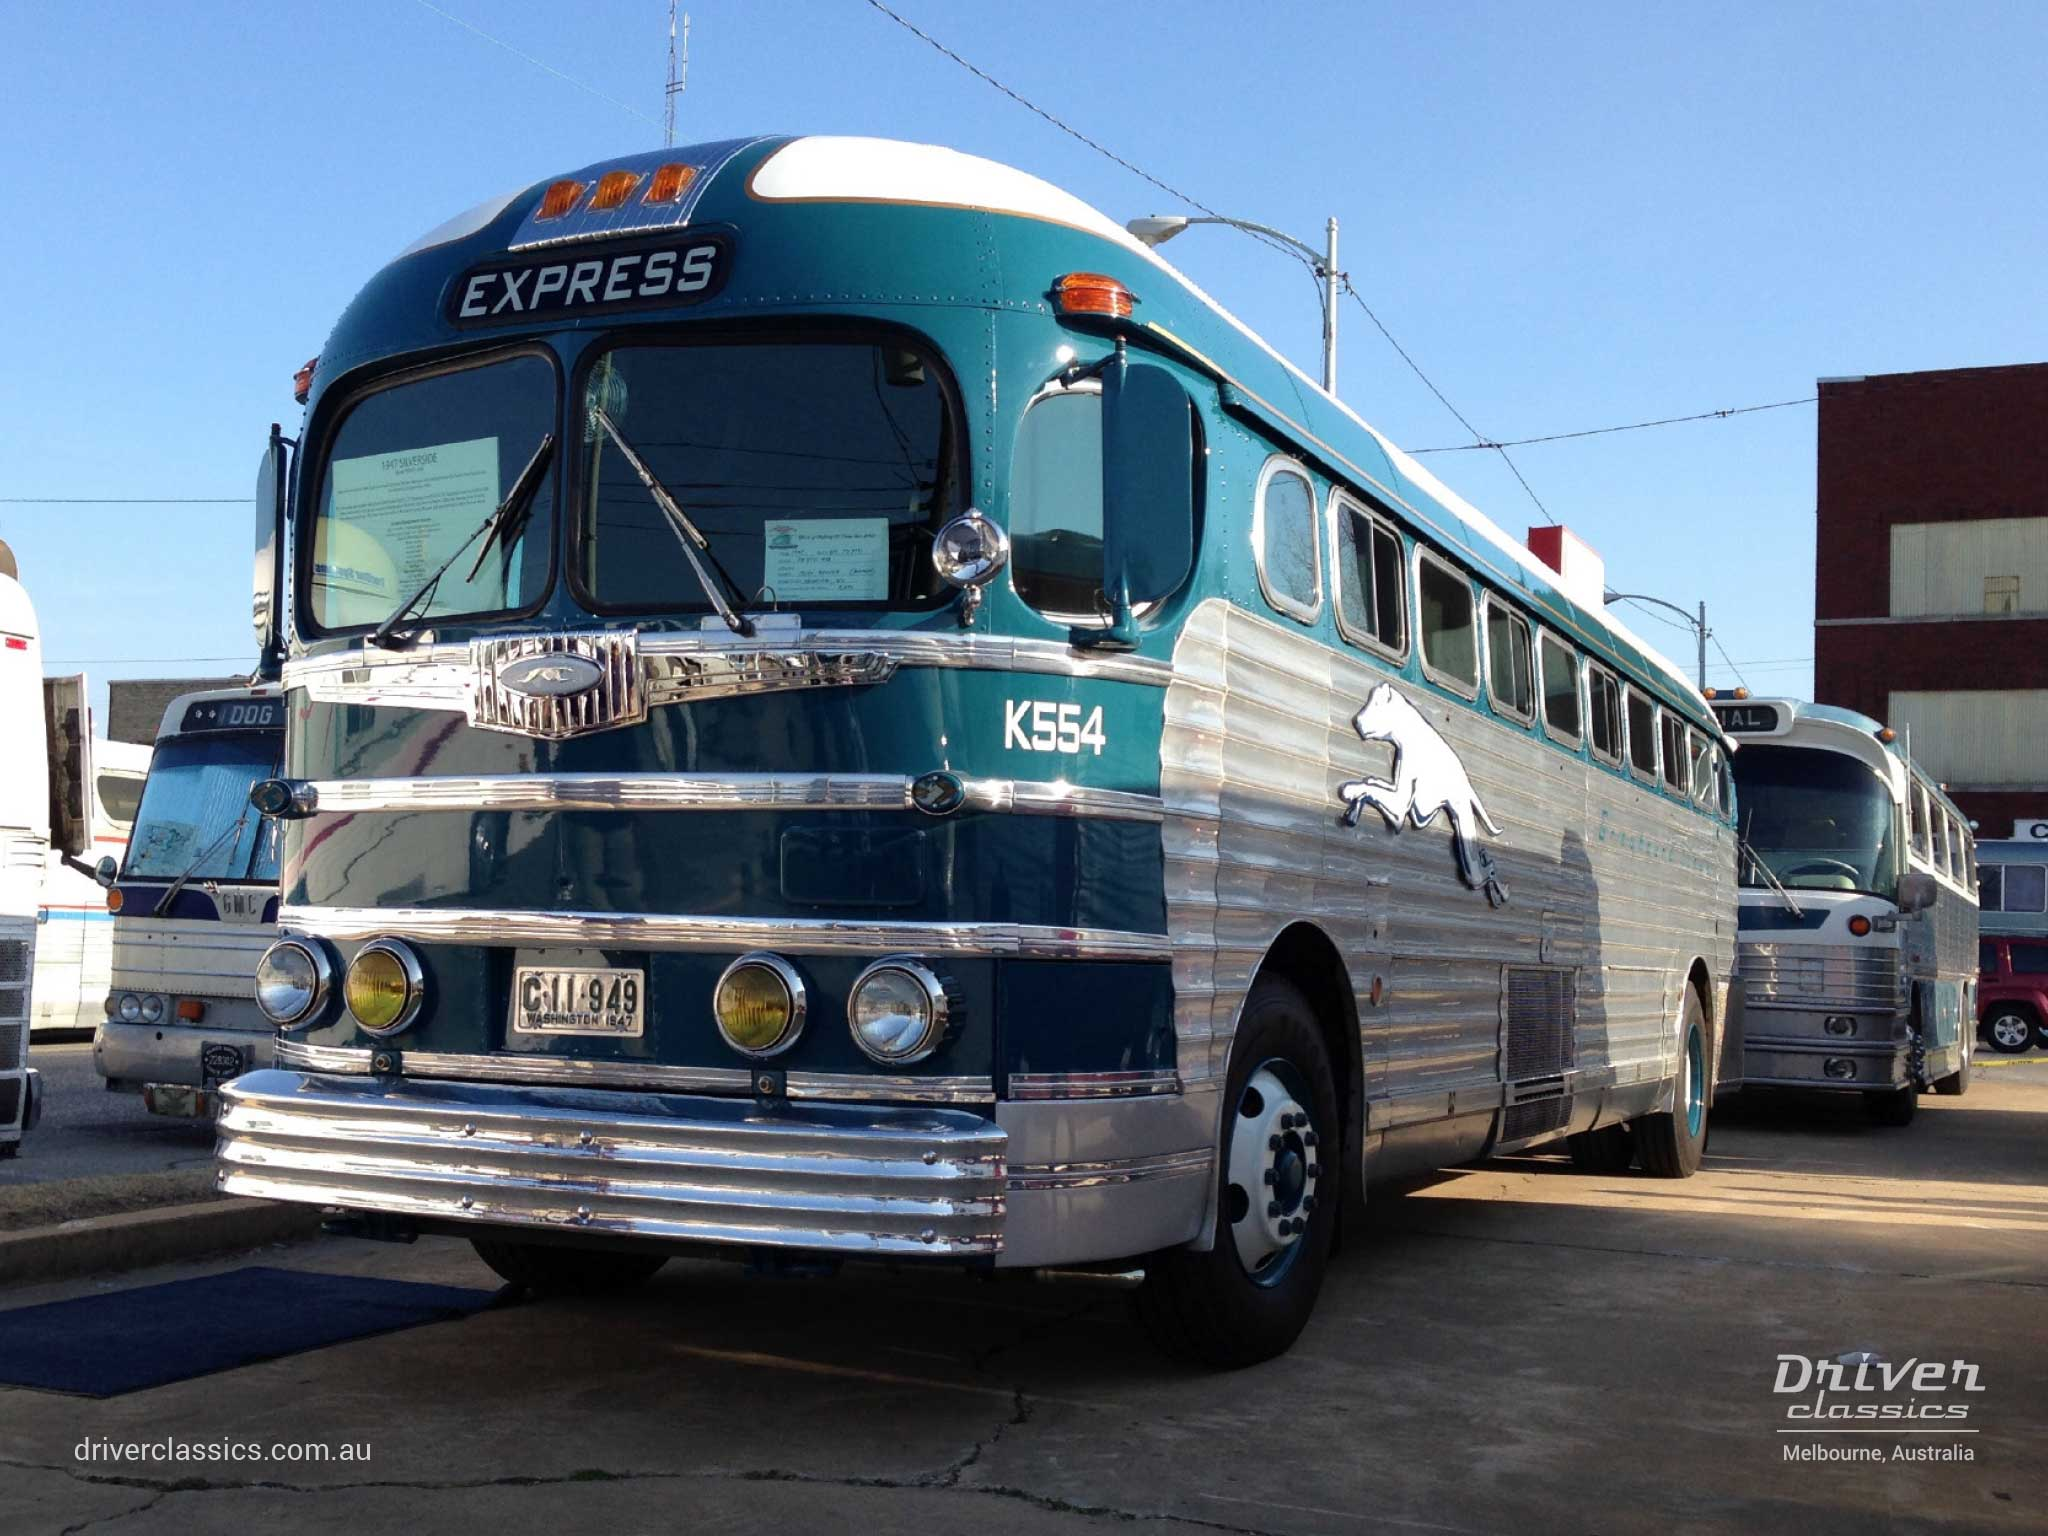 Mark Renner's fully restored GM PD-3751 Silversides bus, Front, Texas USA. Photo taken April 2010